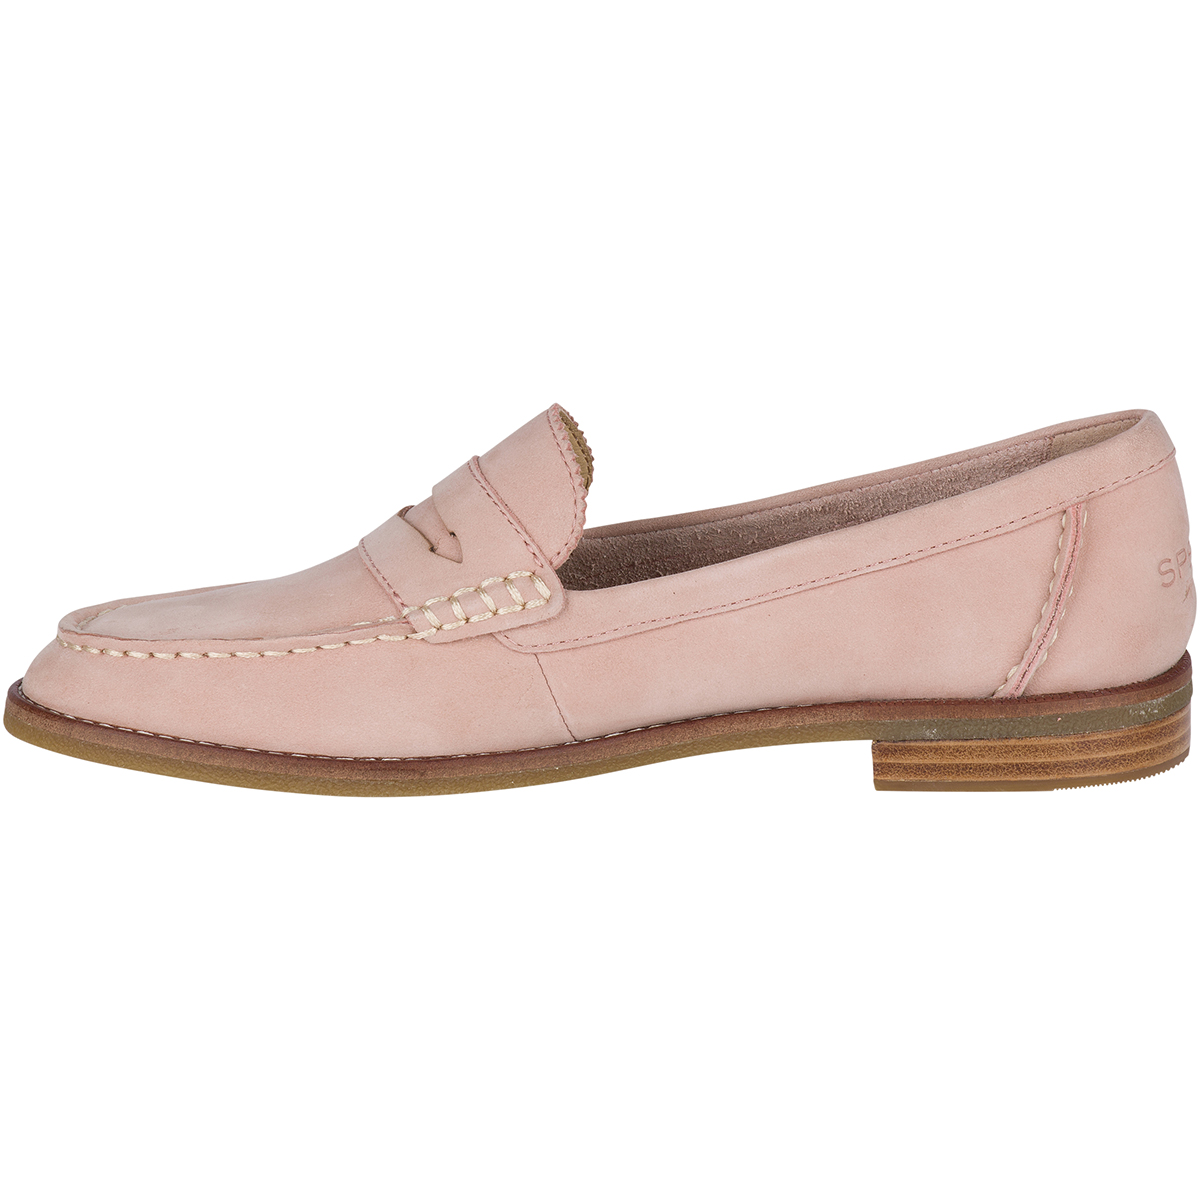 Sperry Women/'s Seaport Penny Loafers